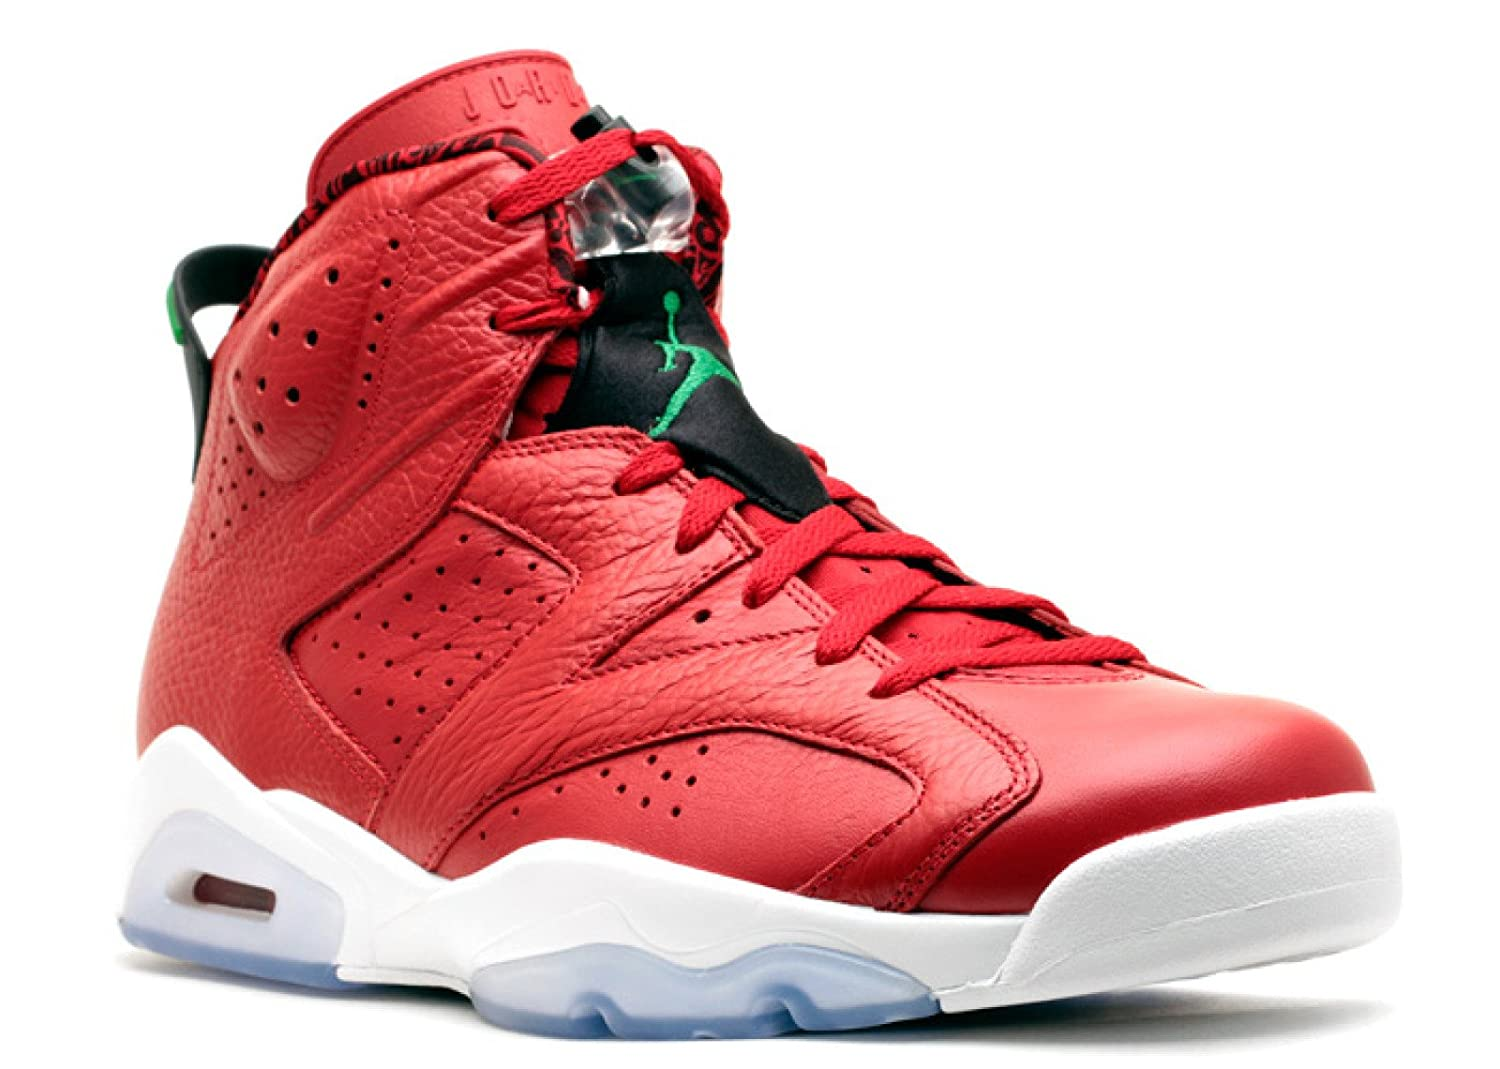 detailed pictures 42068 4d810 Nike Mens Air Jordan 6 Retro Spizike History of Spizike Varsity Red/Classic  Green-Wht Leather Basketball Shoes Size 11